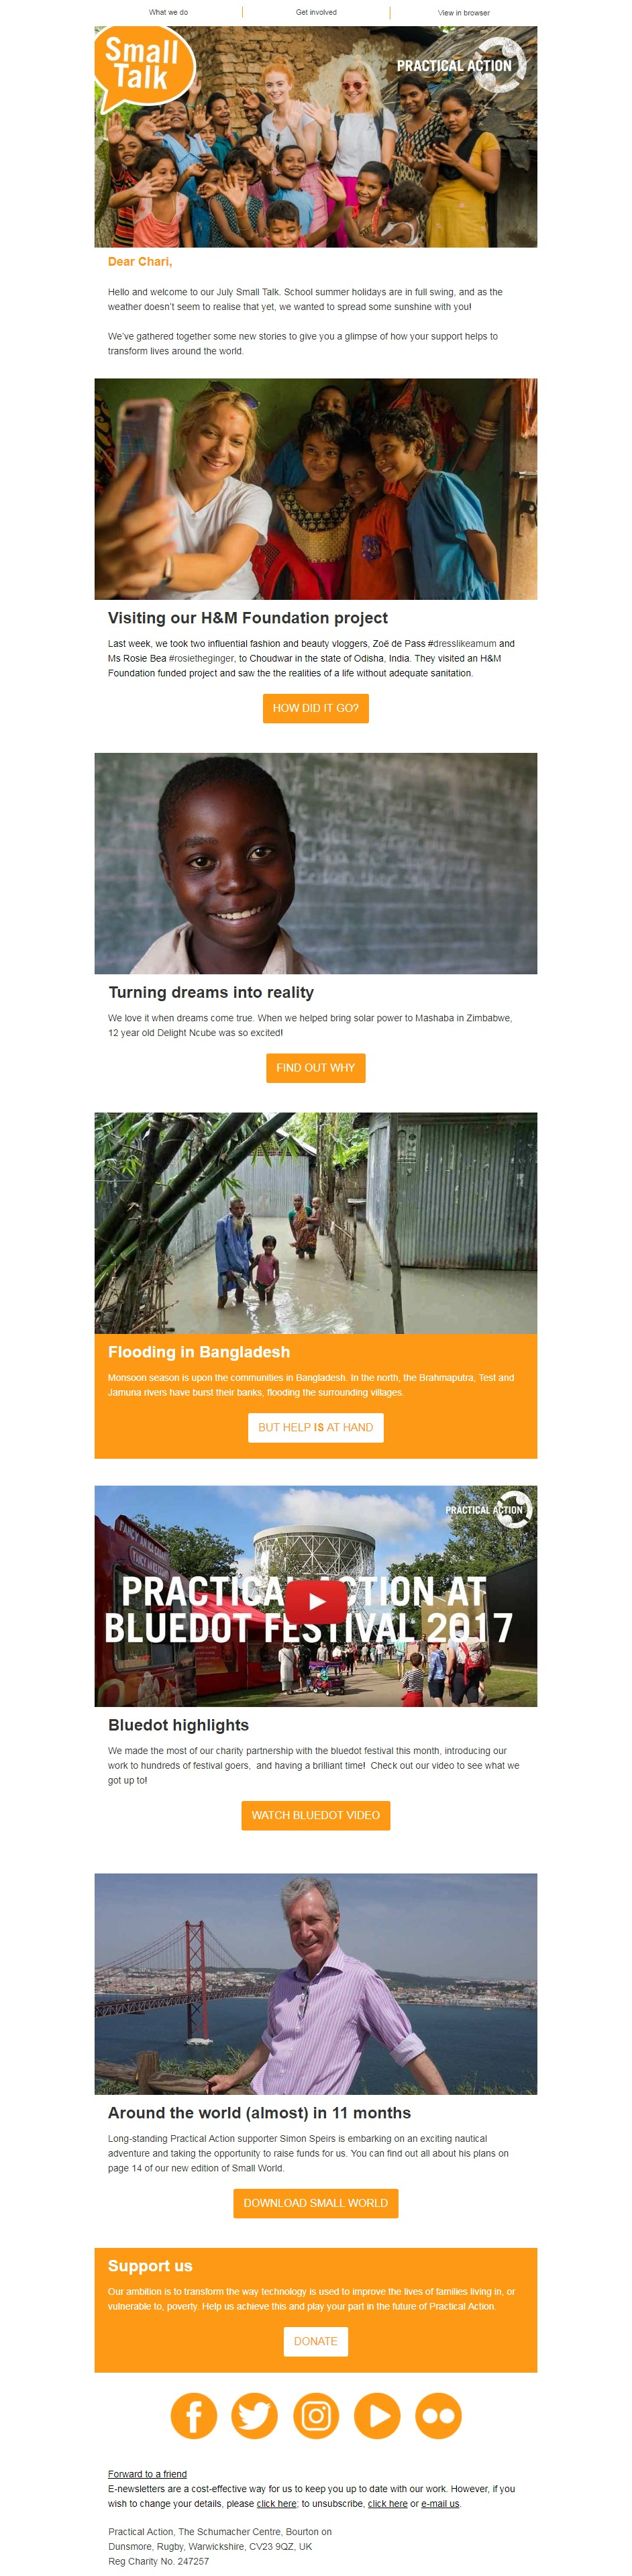 Charity Email - Practical Action